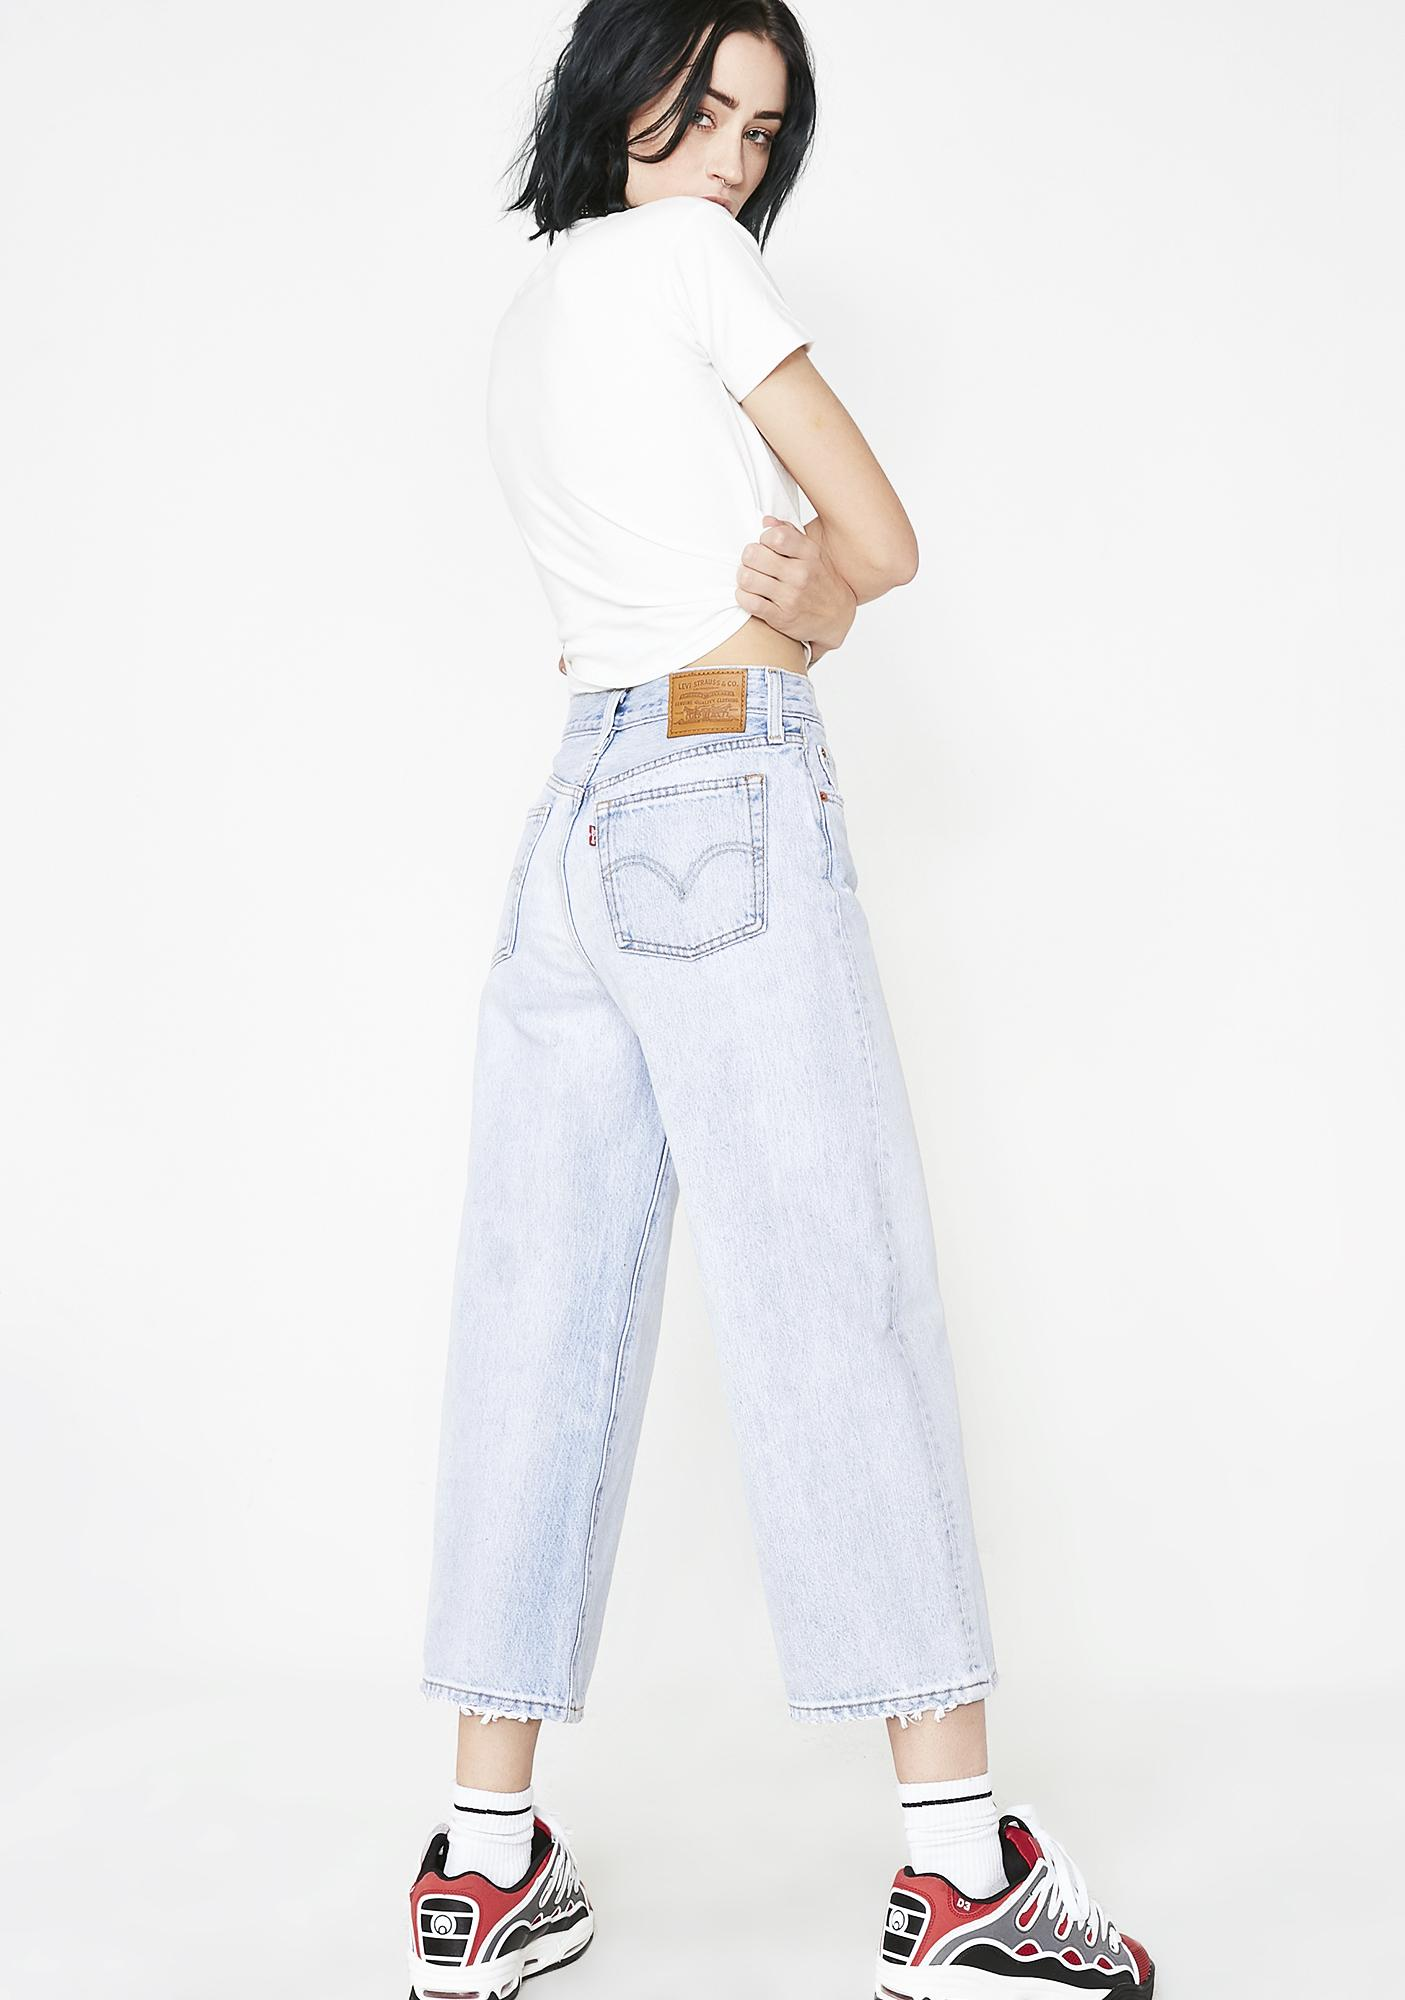 Levis Throwing Shade Jeans